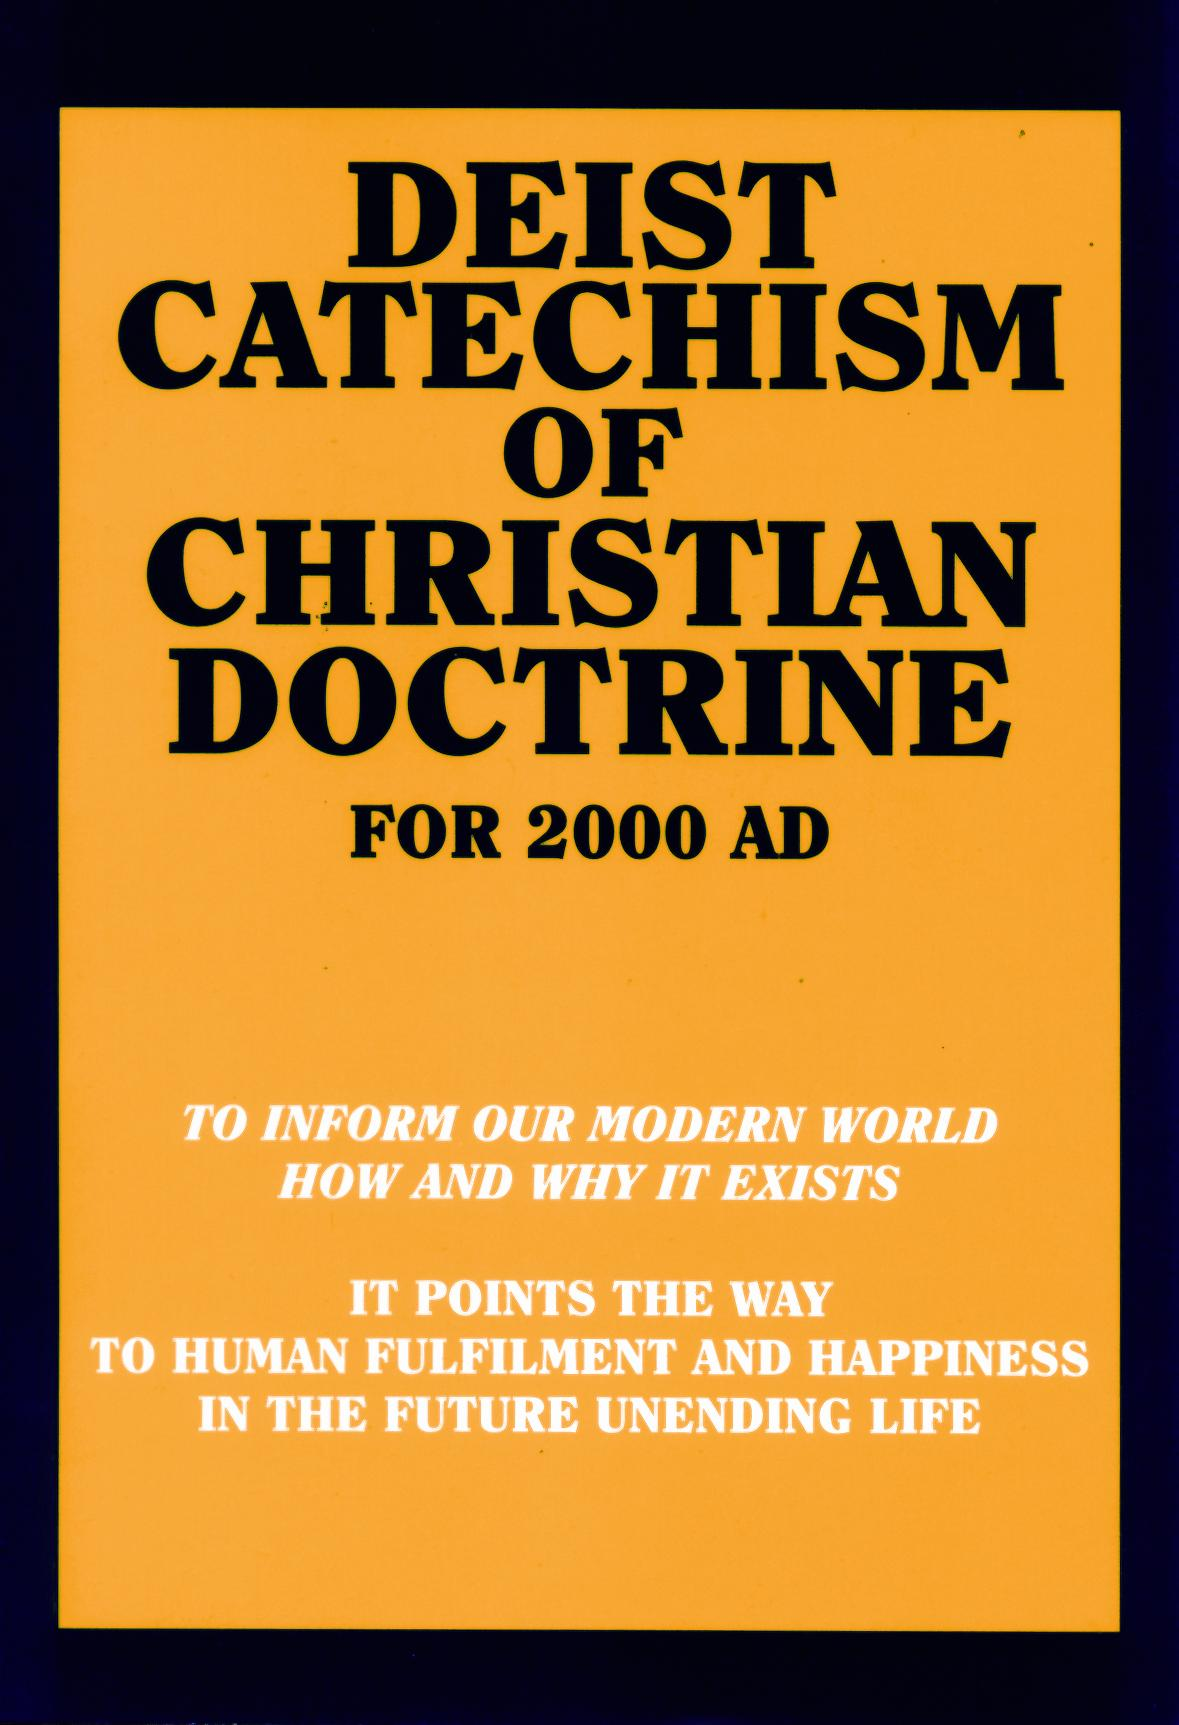 Deist Catechism of Christian Doctrine